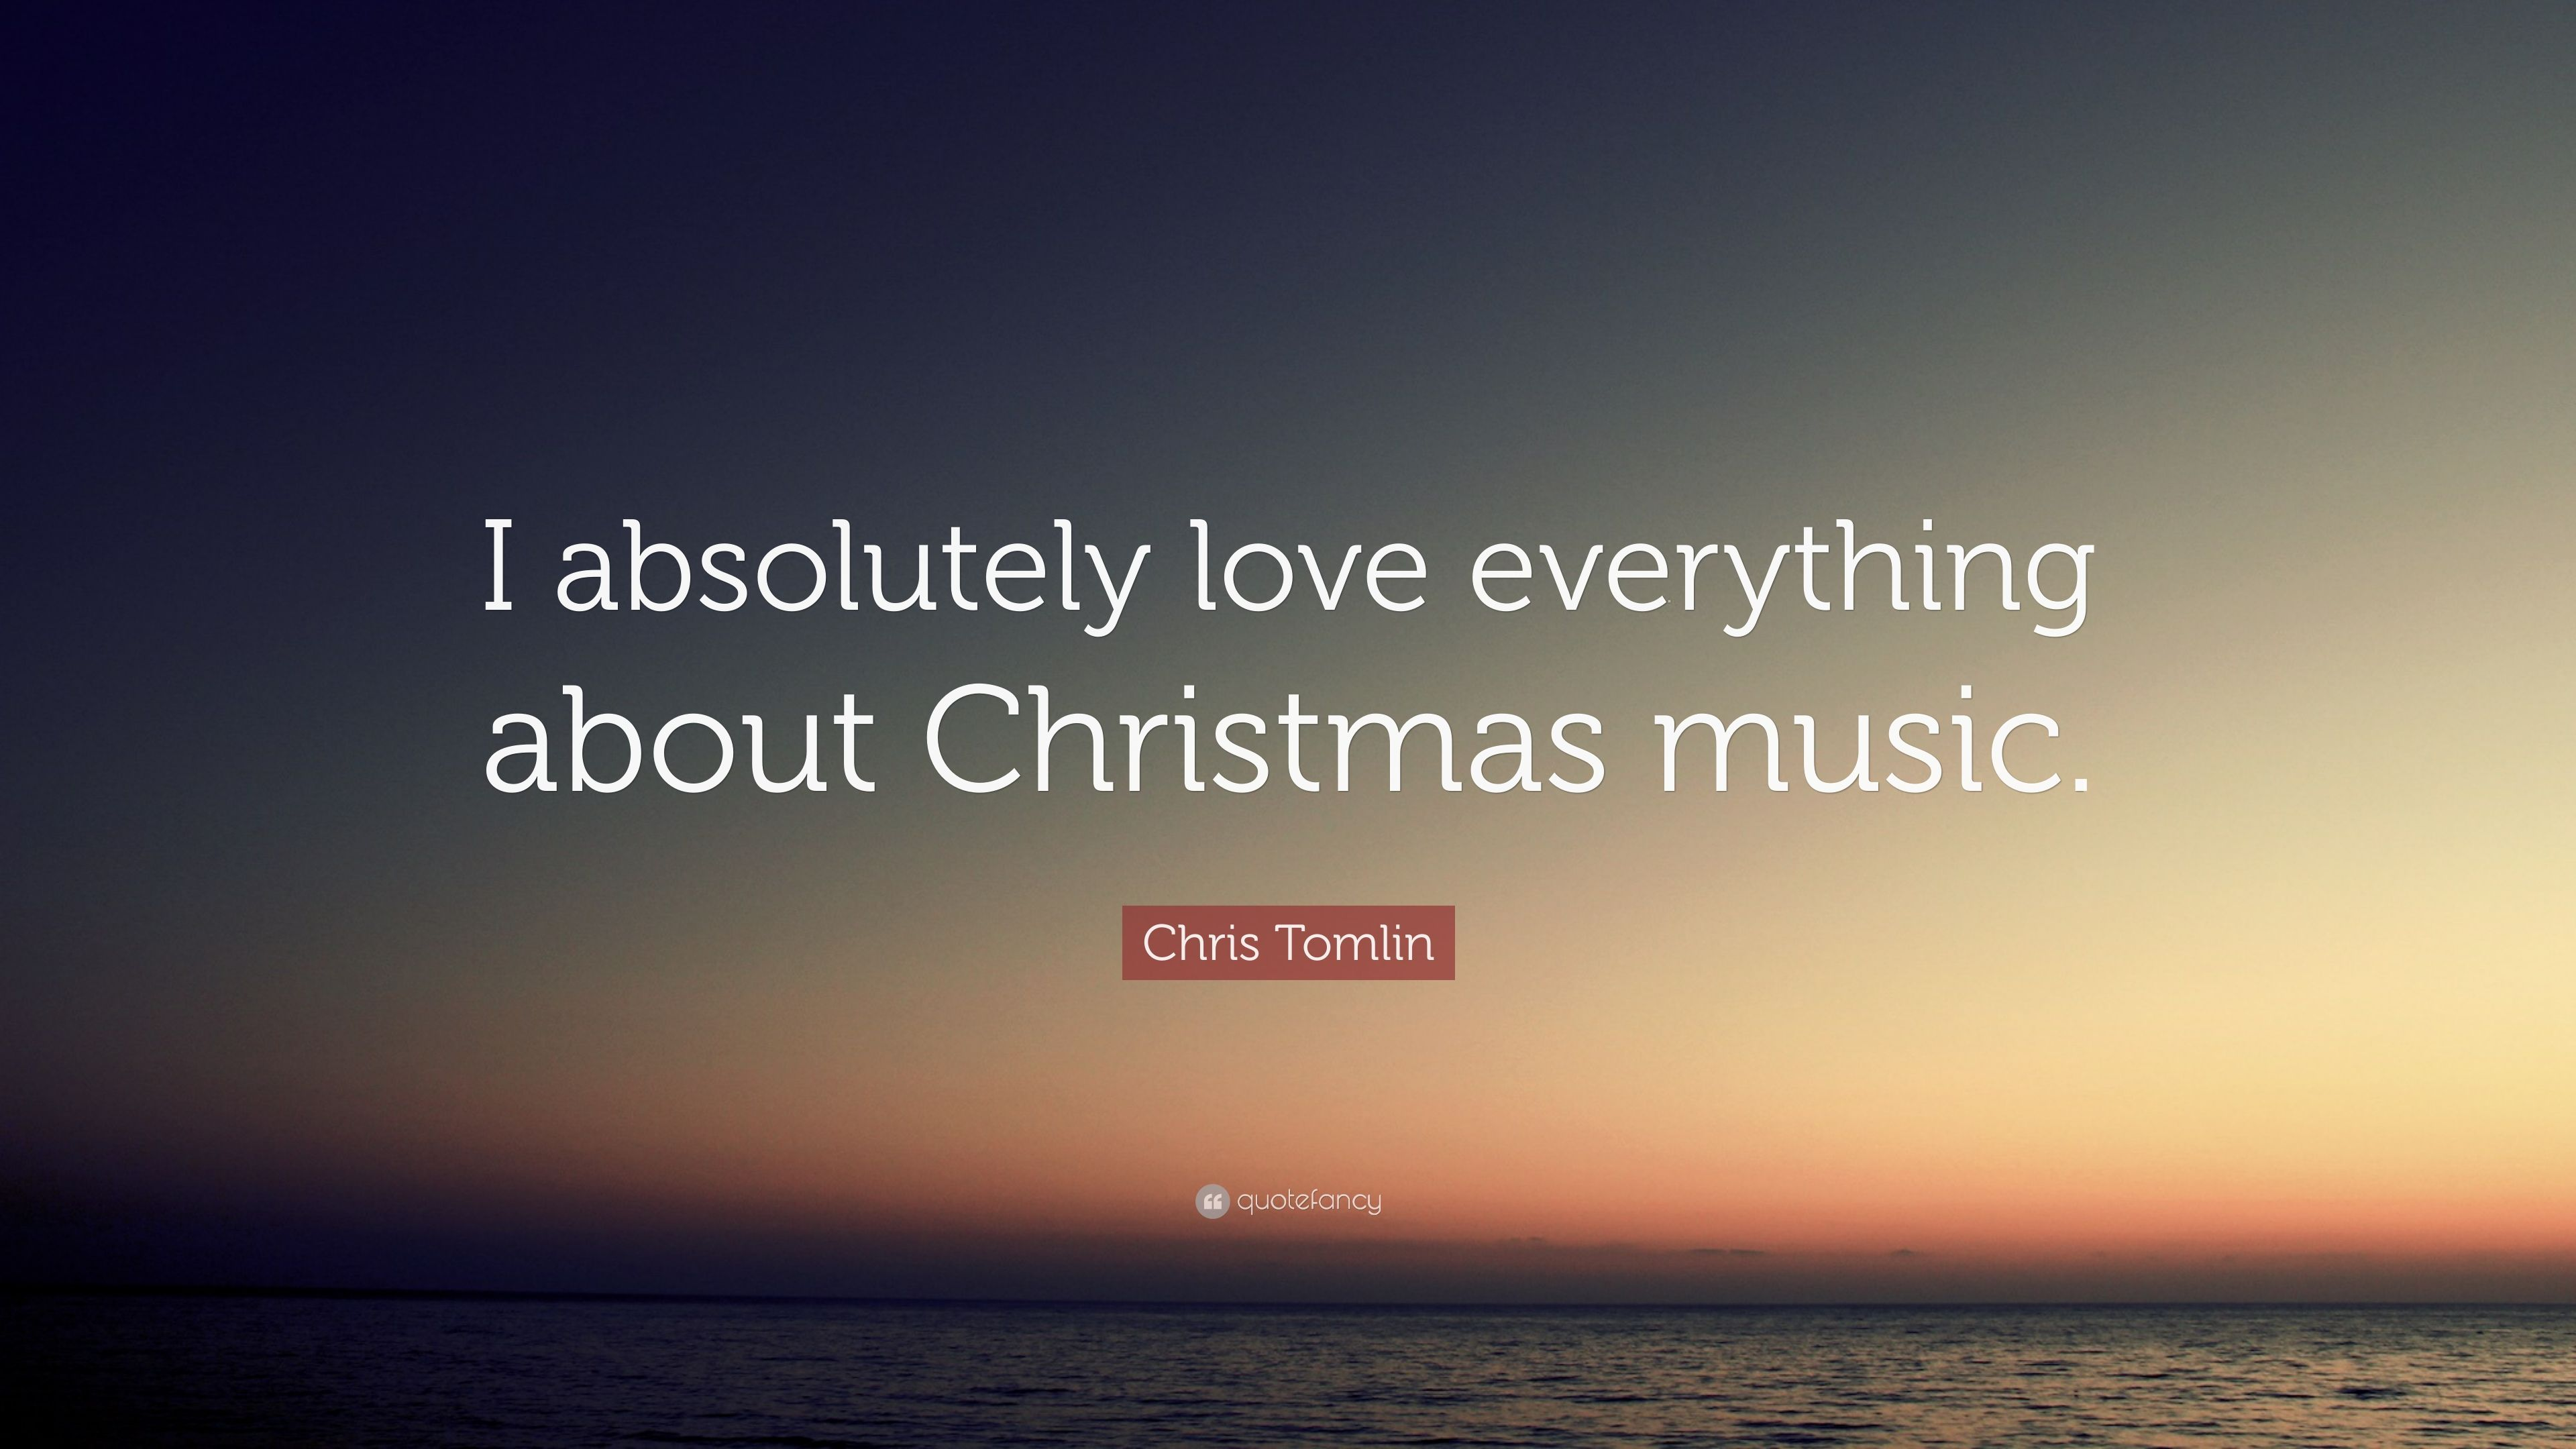 chris tomlin quote i absolutely love everything about christmas music